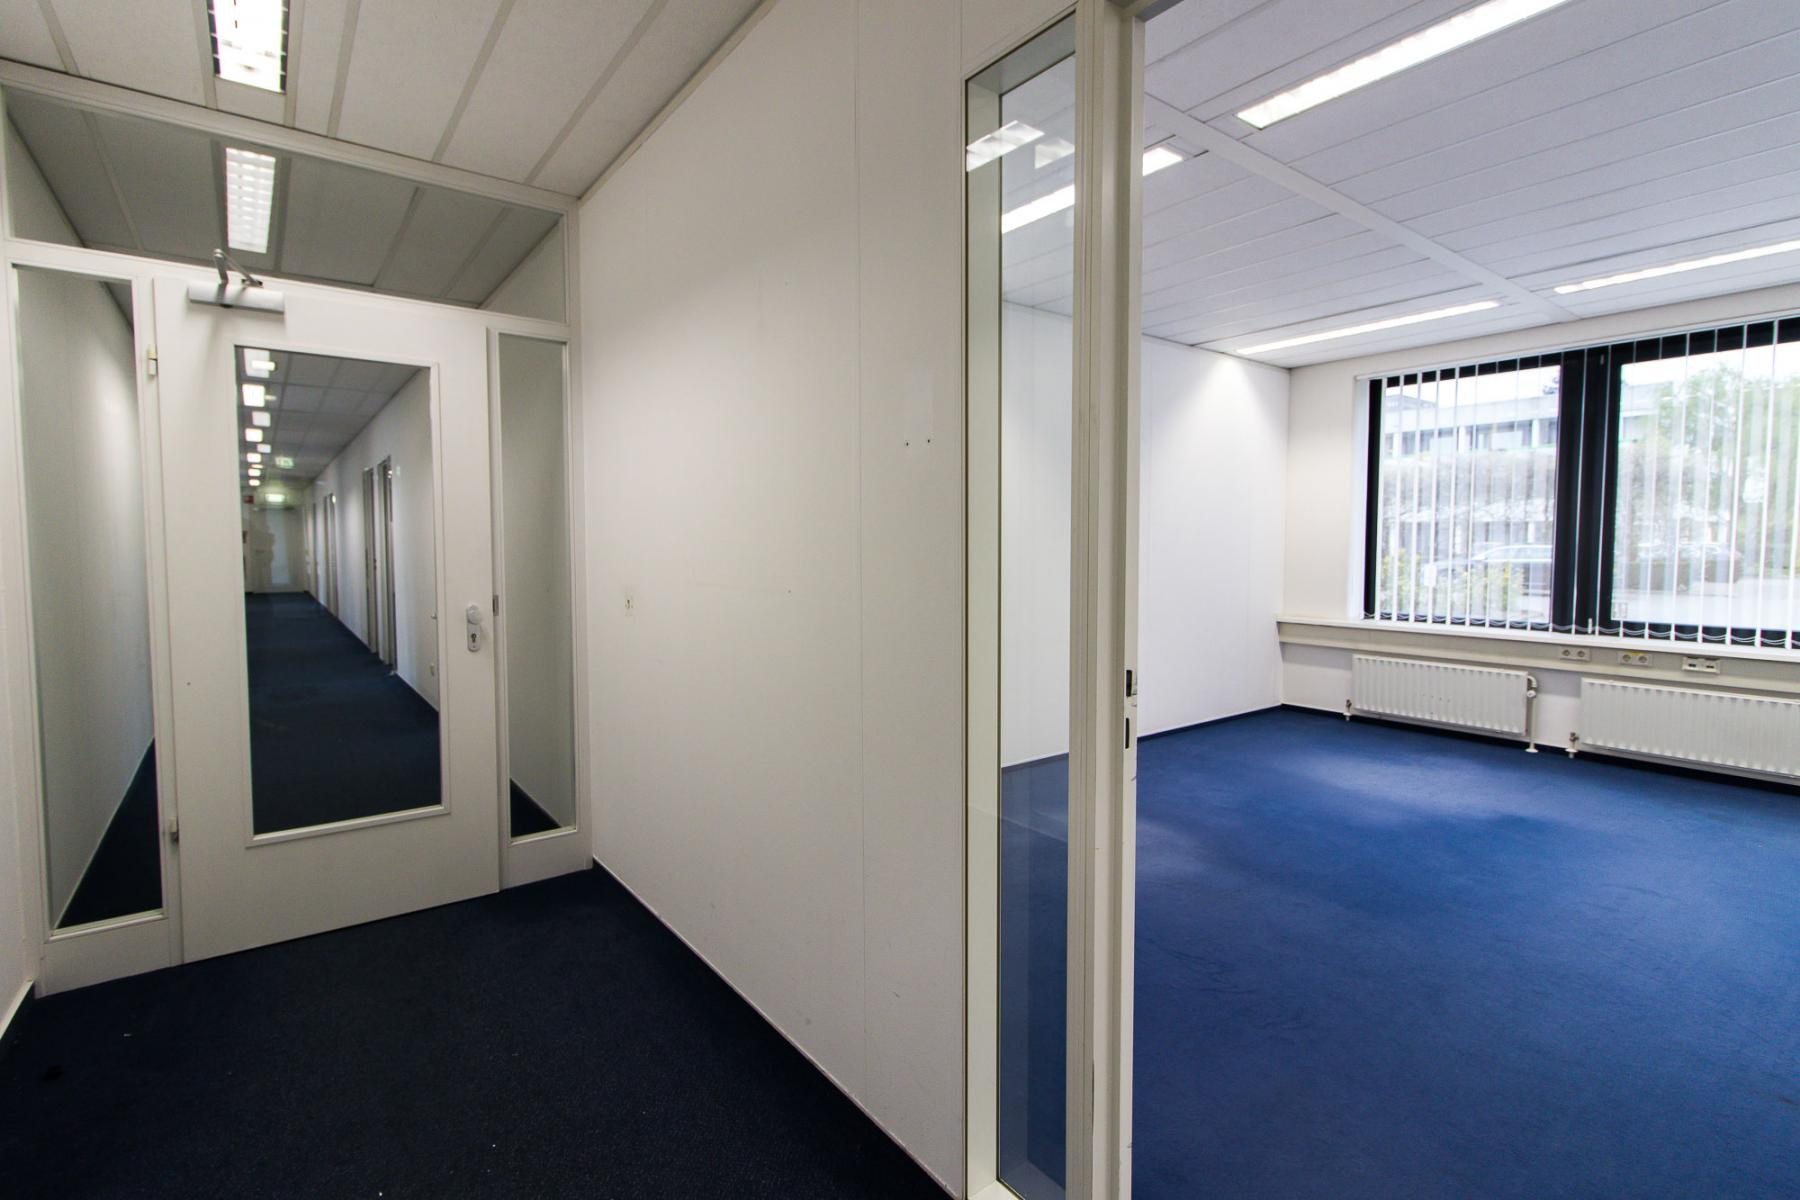 Rent an office space in Venlo